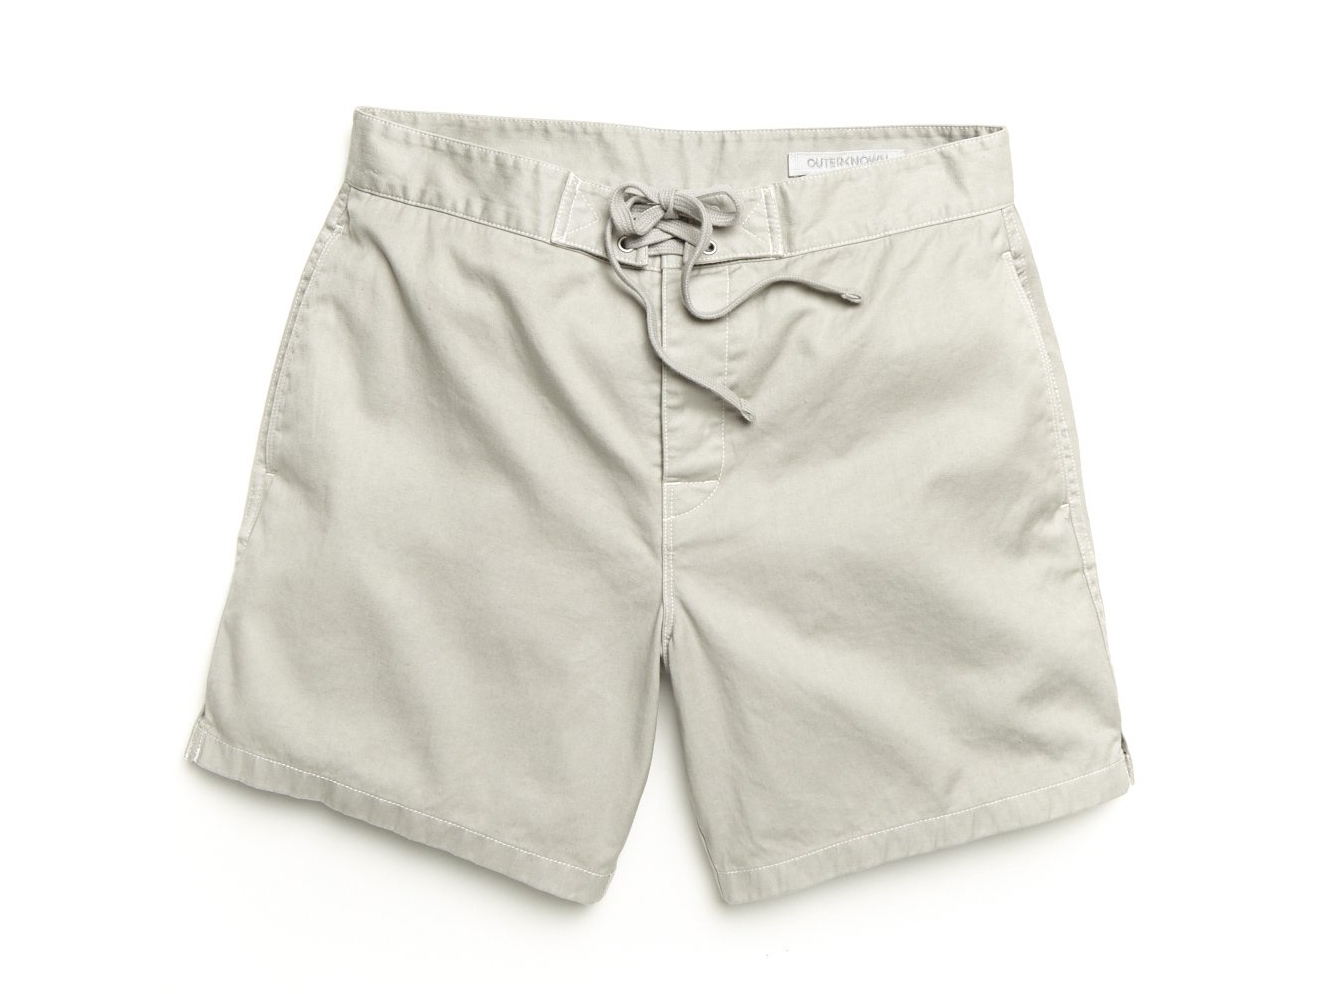 Outerknown Halcyon Shorts